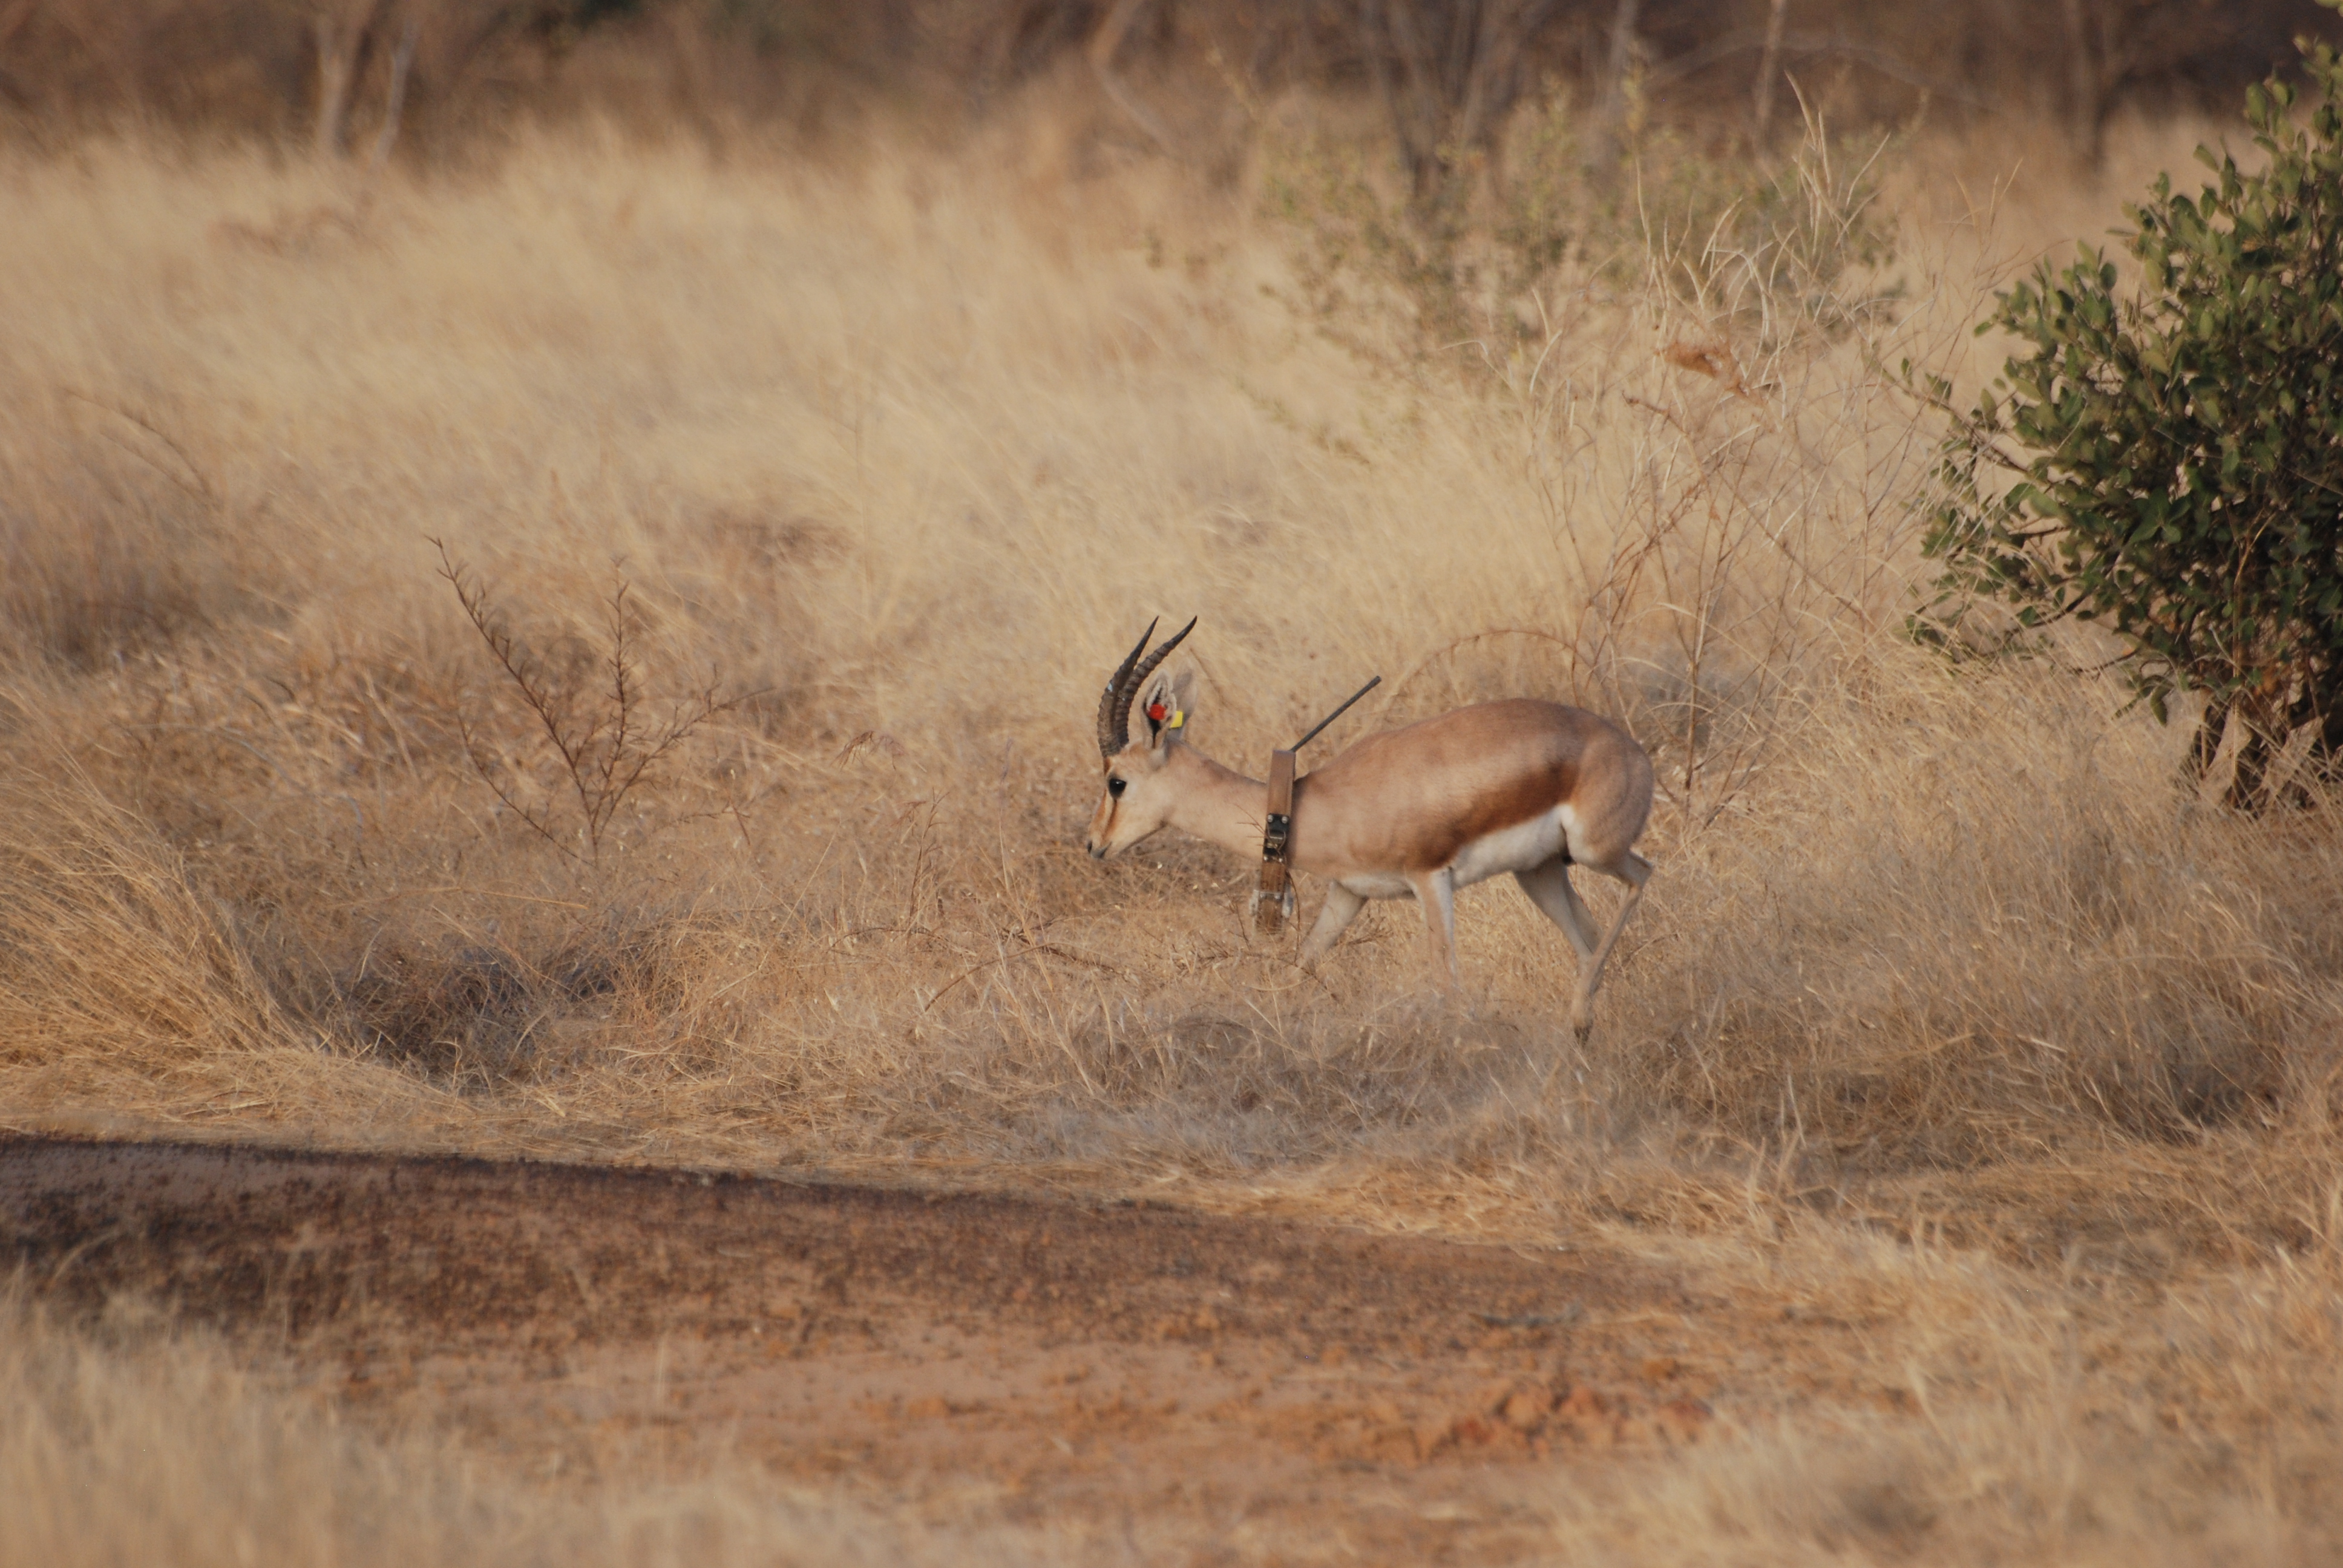 A dorcas gazelle with a GPS-collar recording activities, transmitted by Argos. The collar weights less than 500 g, i.e. 3% of the animal's weight (credit C Enseñat)